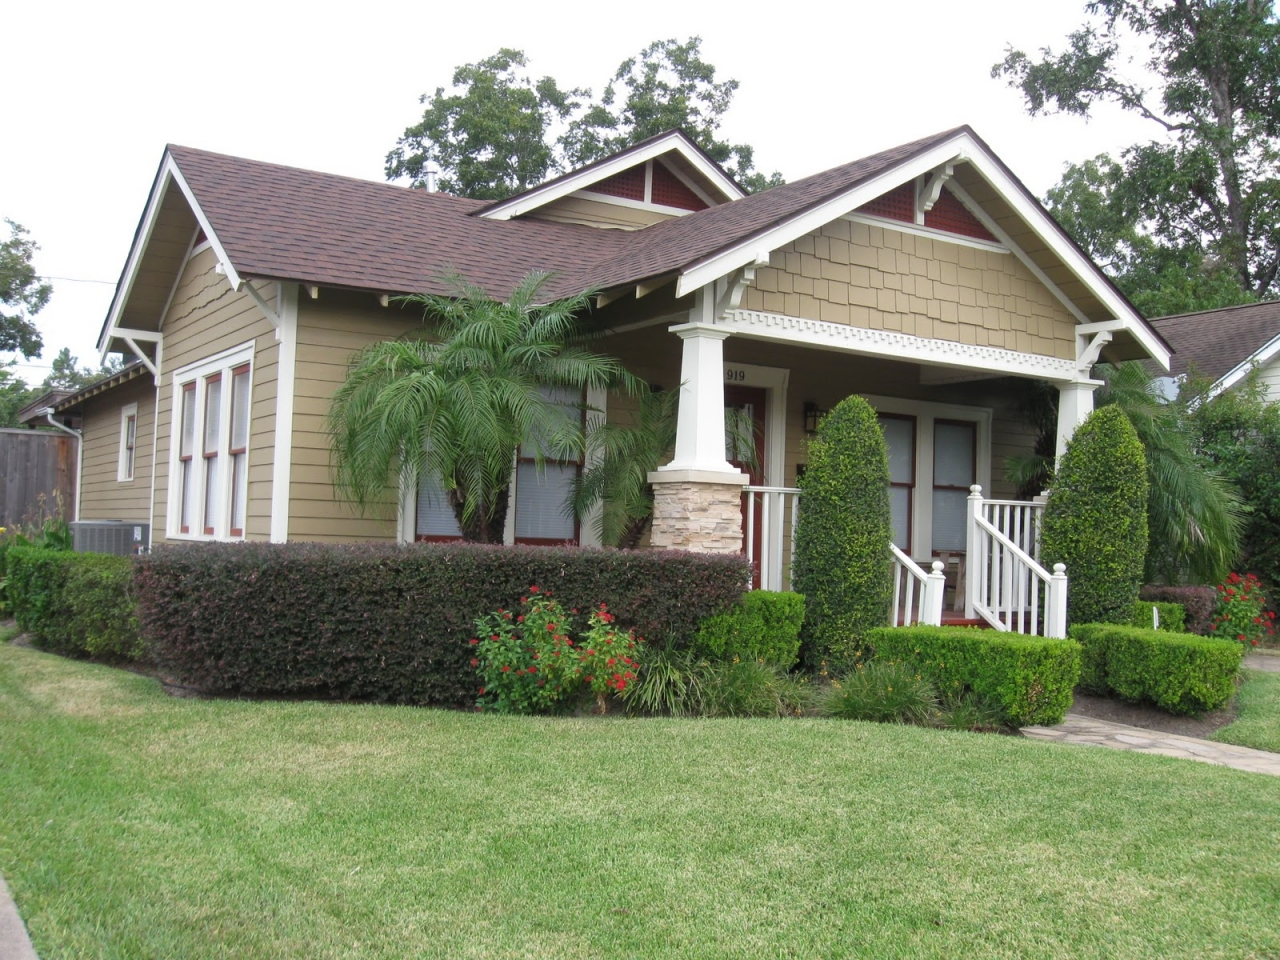 Bungalow style architecture american bungalow style homes - What is a bungalow style house ...